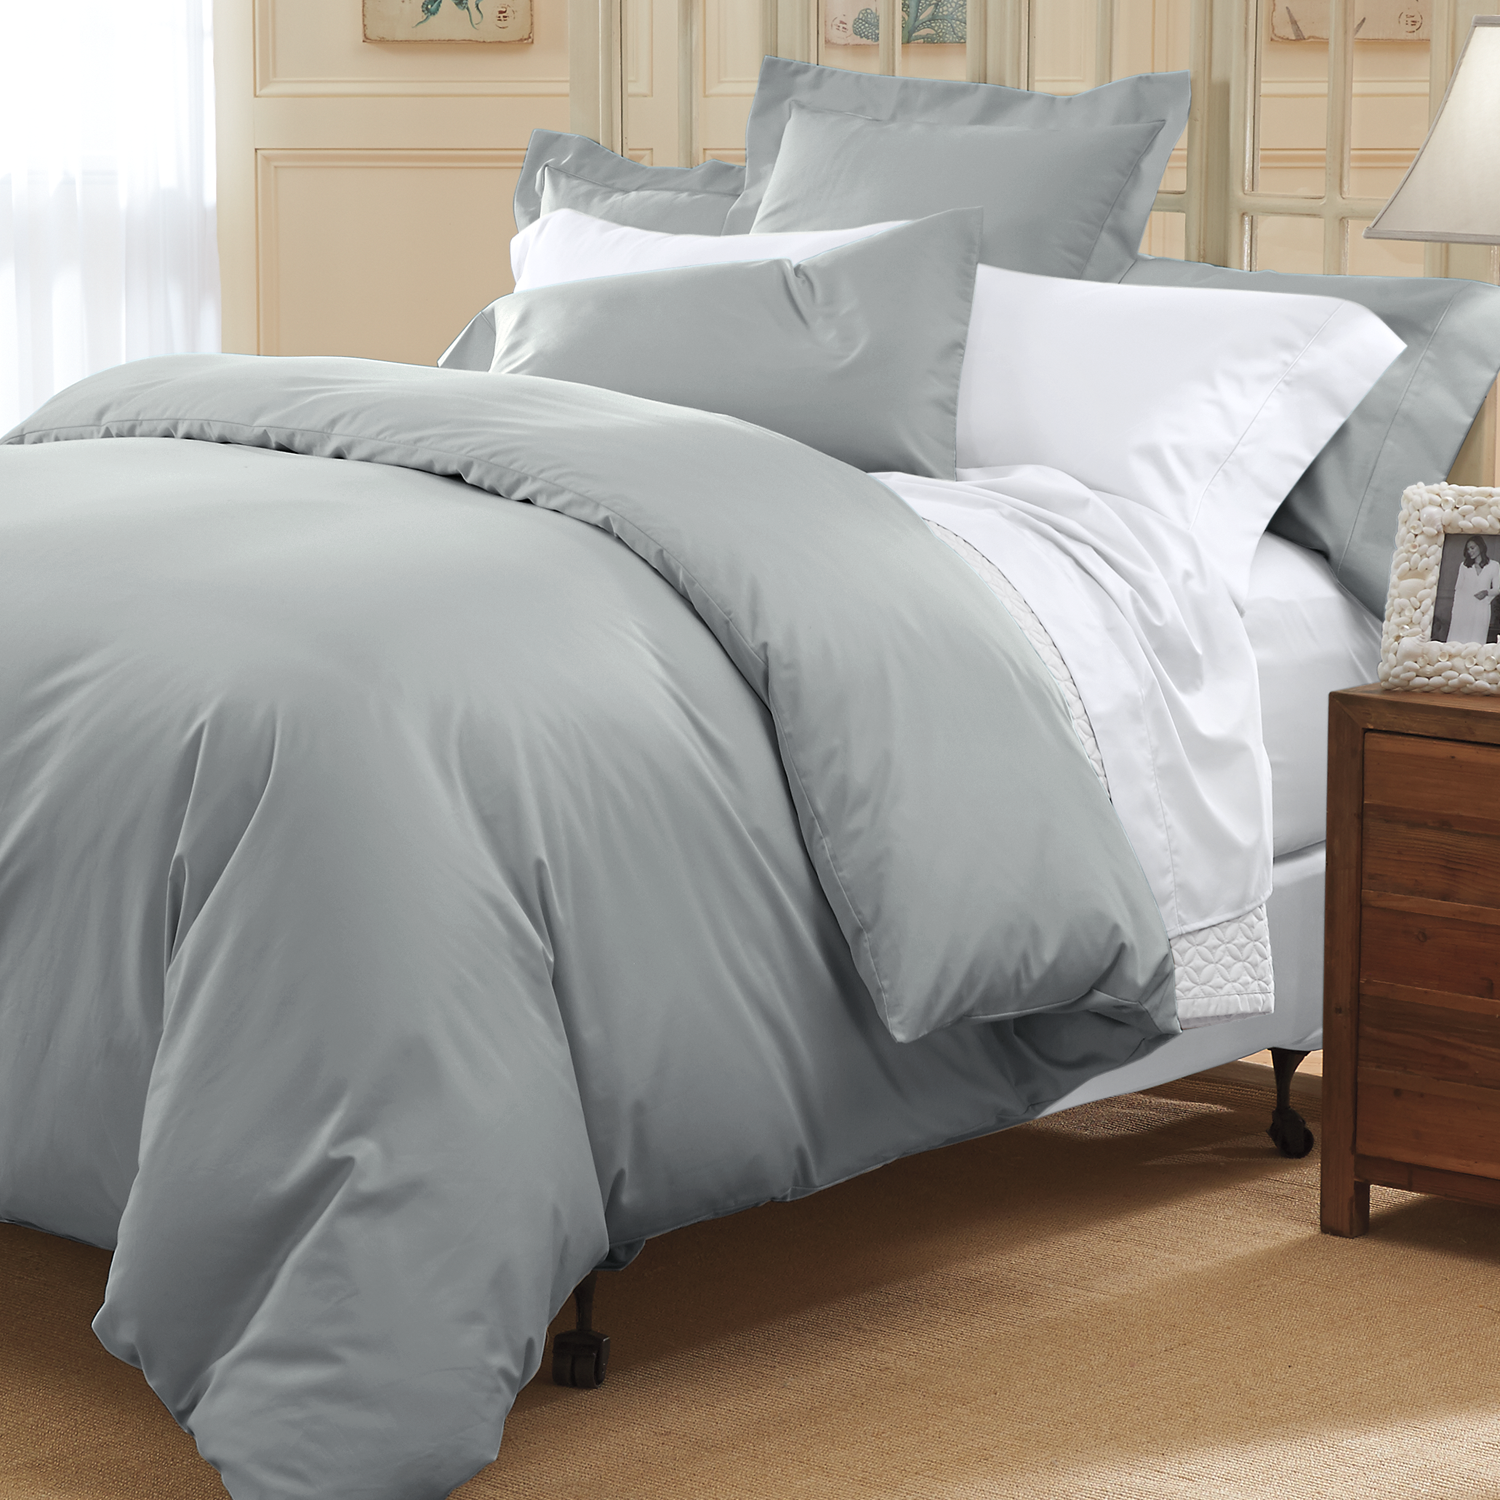 Pewter thread count sheets di bed u bath pinterest sateen